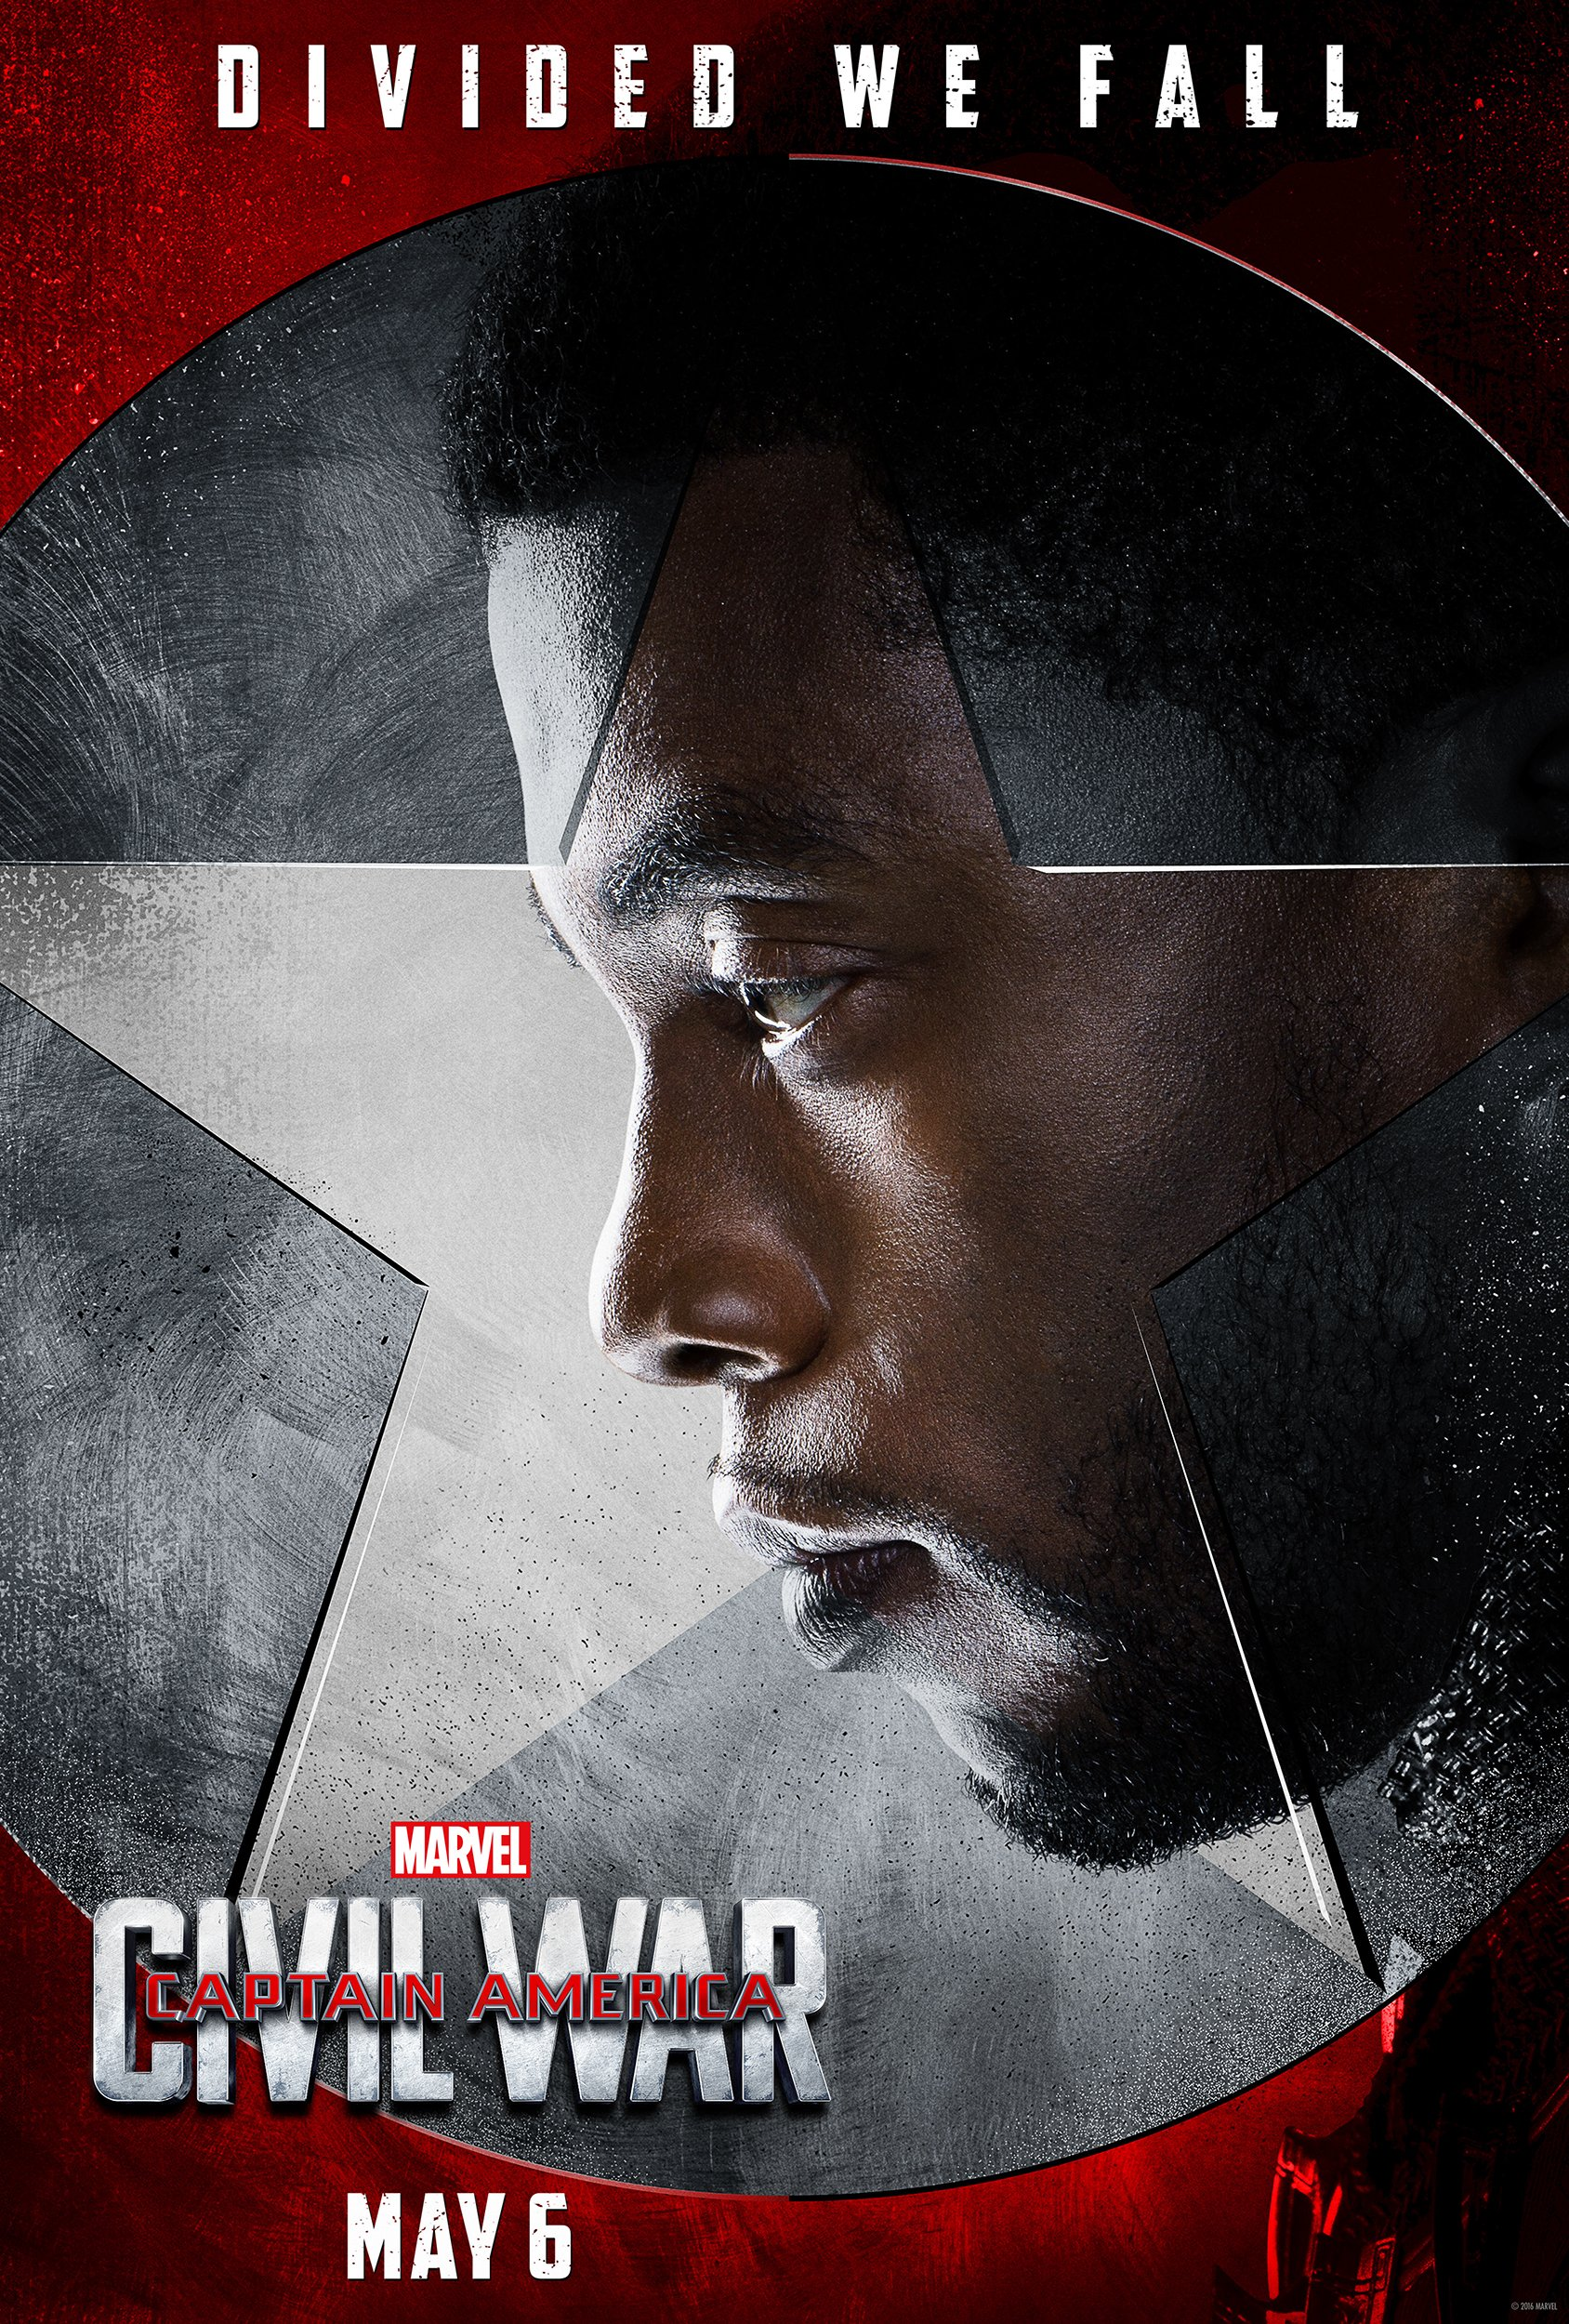 Chadwick Boseman as Black Panther in a character poster for 'Captain America: Civil War'